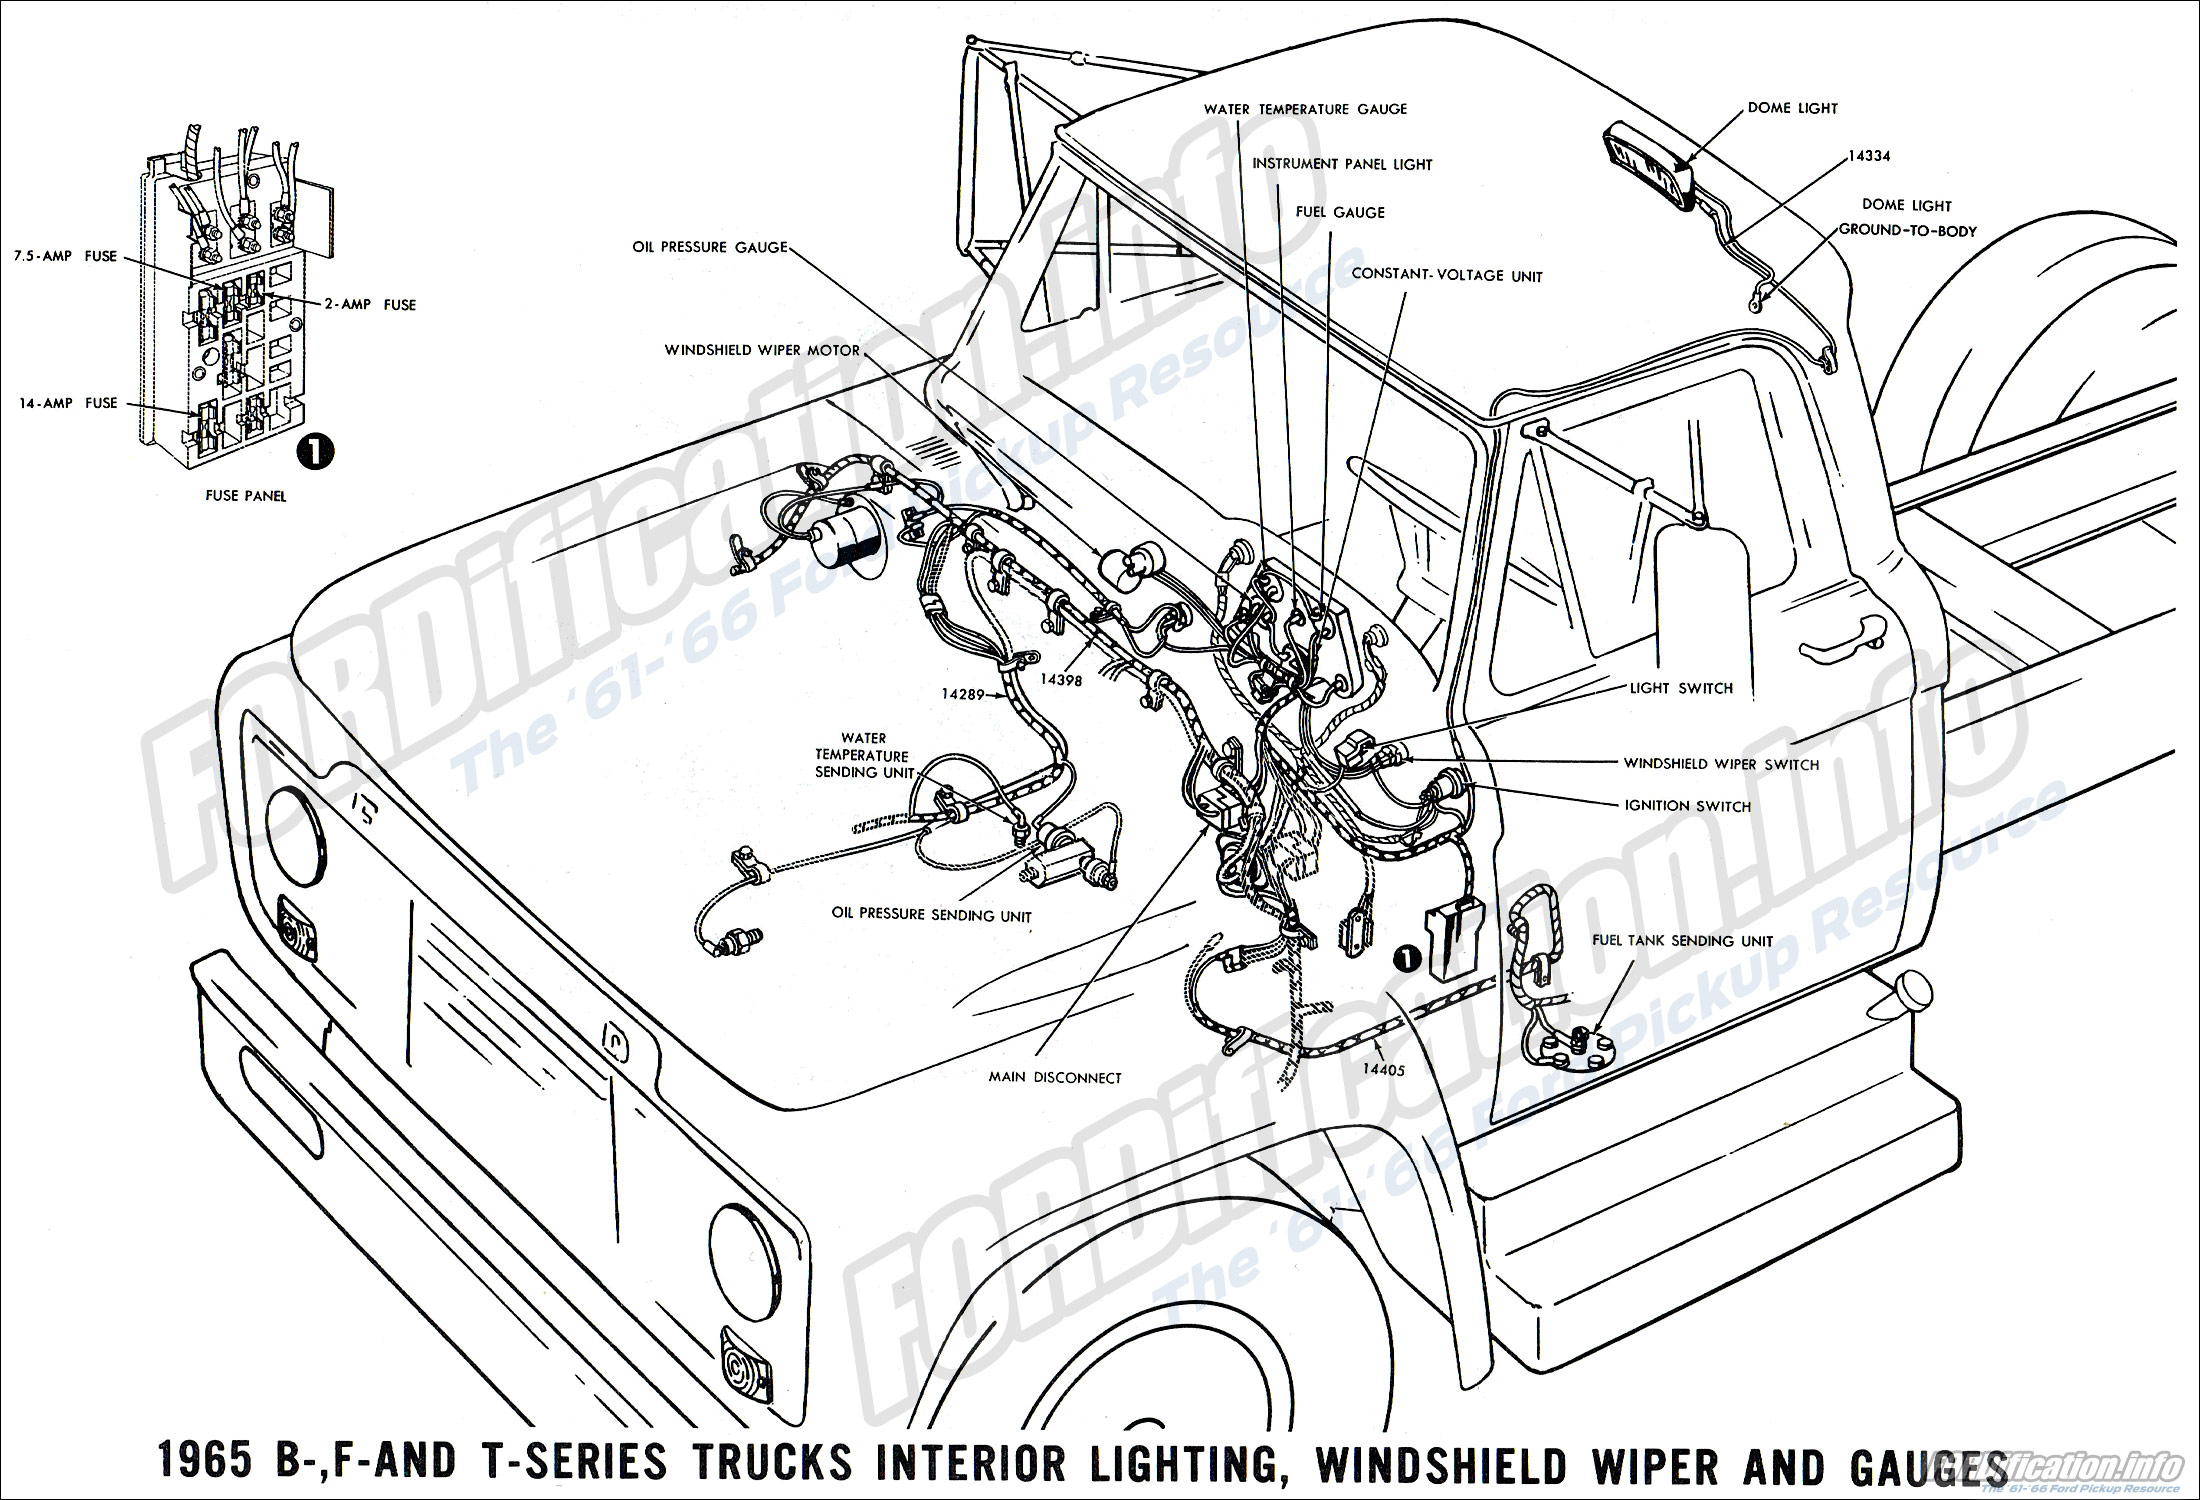 65 f100 wiring diagram wiring diagram 2004 Ford Excursion Radio Wiring Diagram 1965 ford truck wiring diagrams fordification info the u002761 u0027661965 b f and